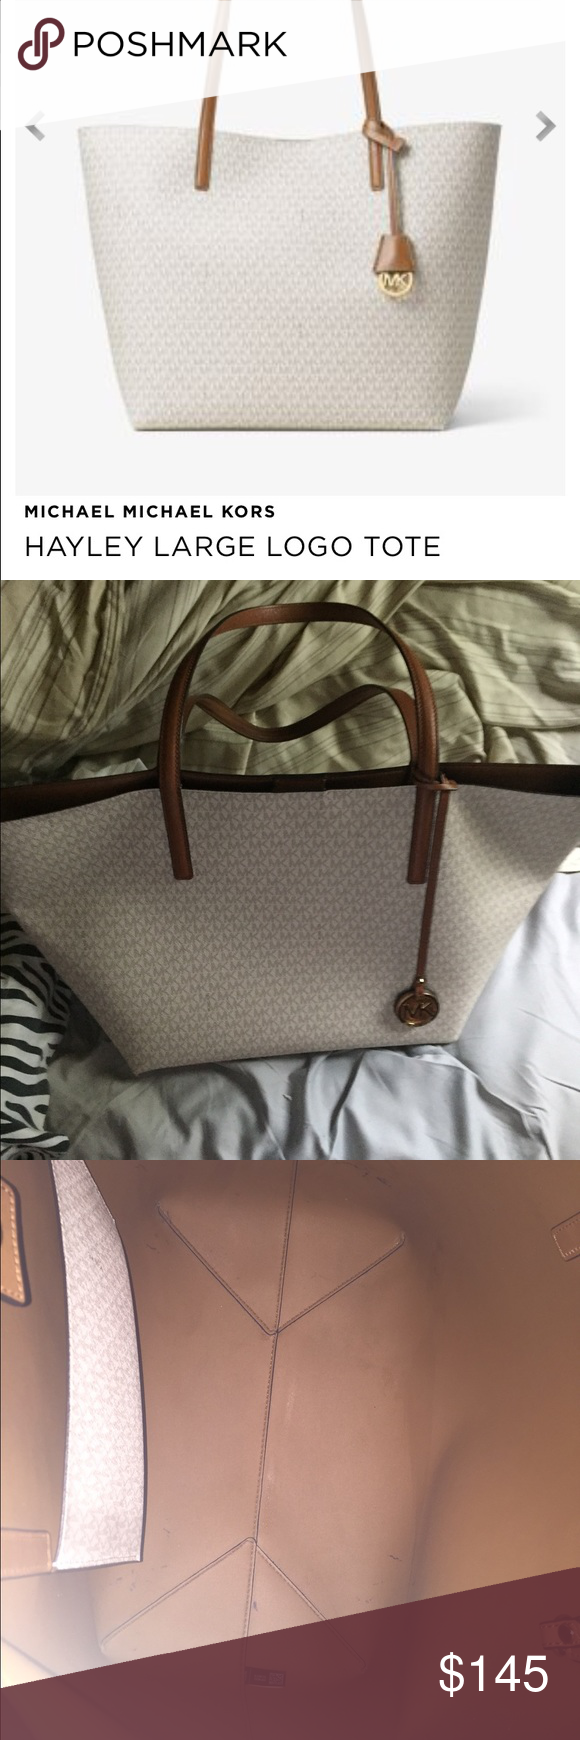 Authentic Michael Kors large leather tote Spring season bag used for a few months outside in excellent condition, some pen marks on inside leather. Comes with detachable leather wallet. Michael Kors Bags Totes